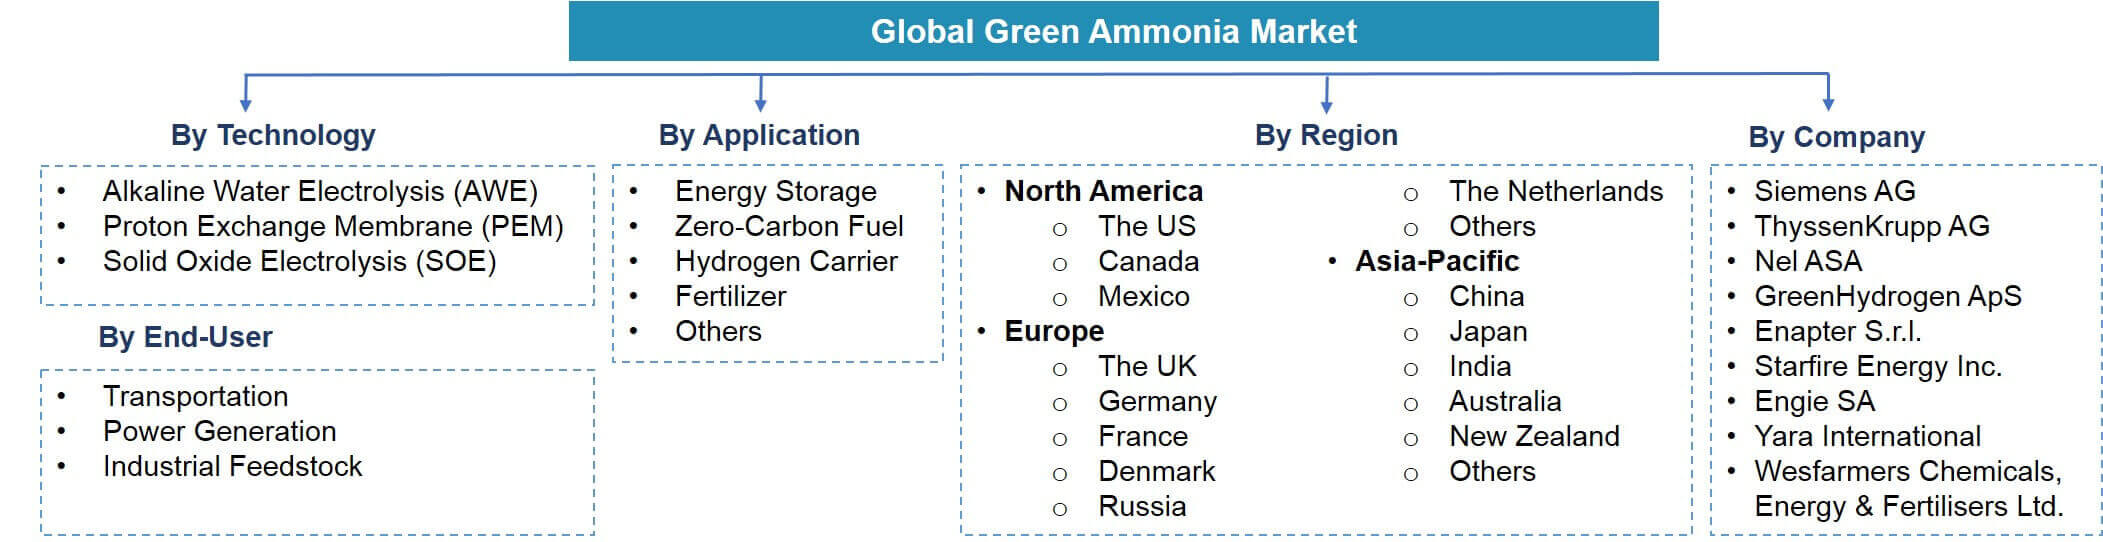 Global Green Ammonia Market Segmentation